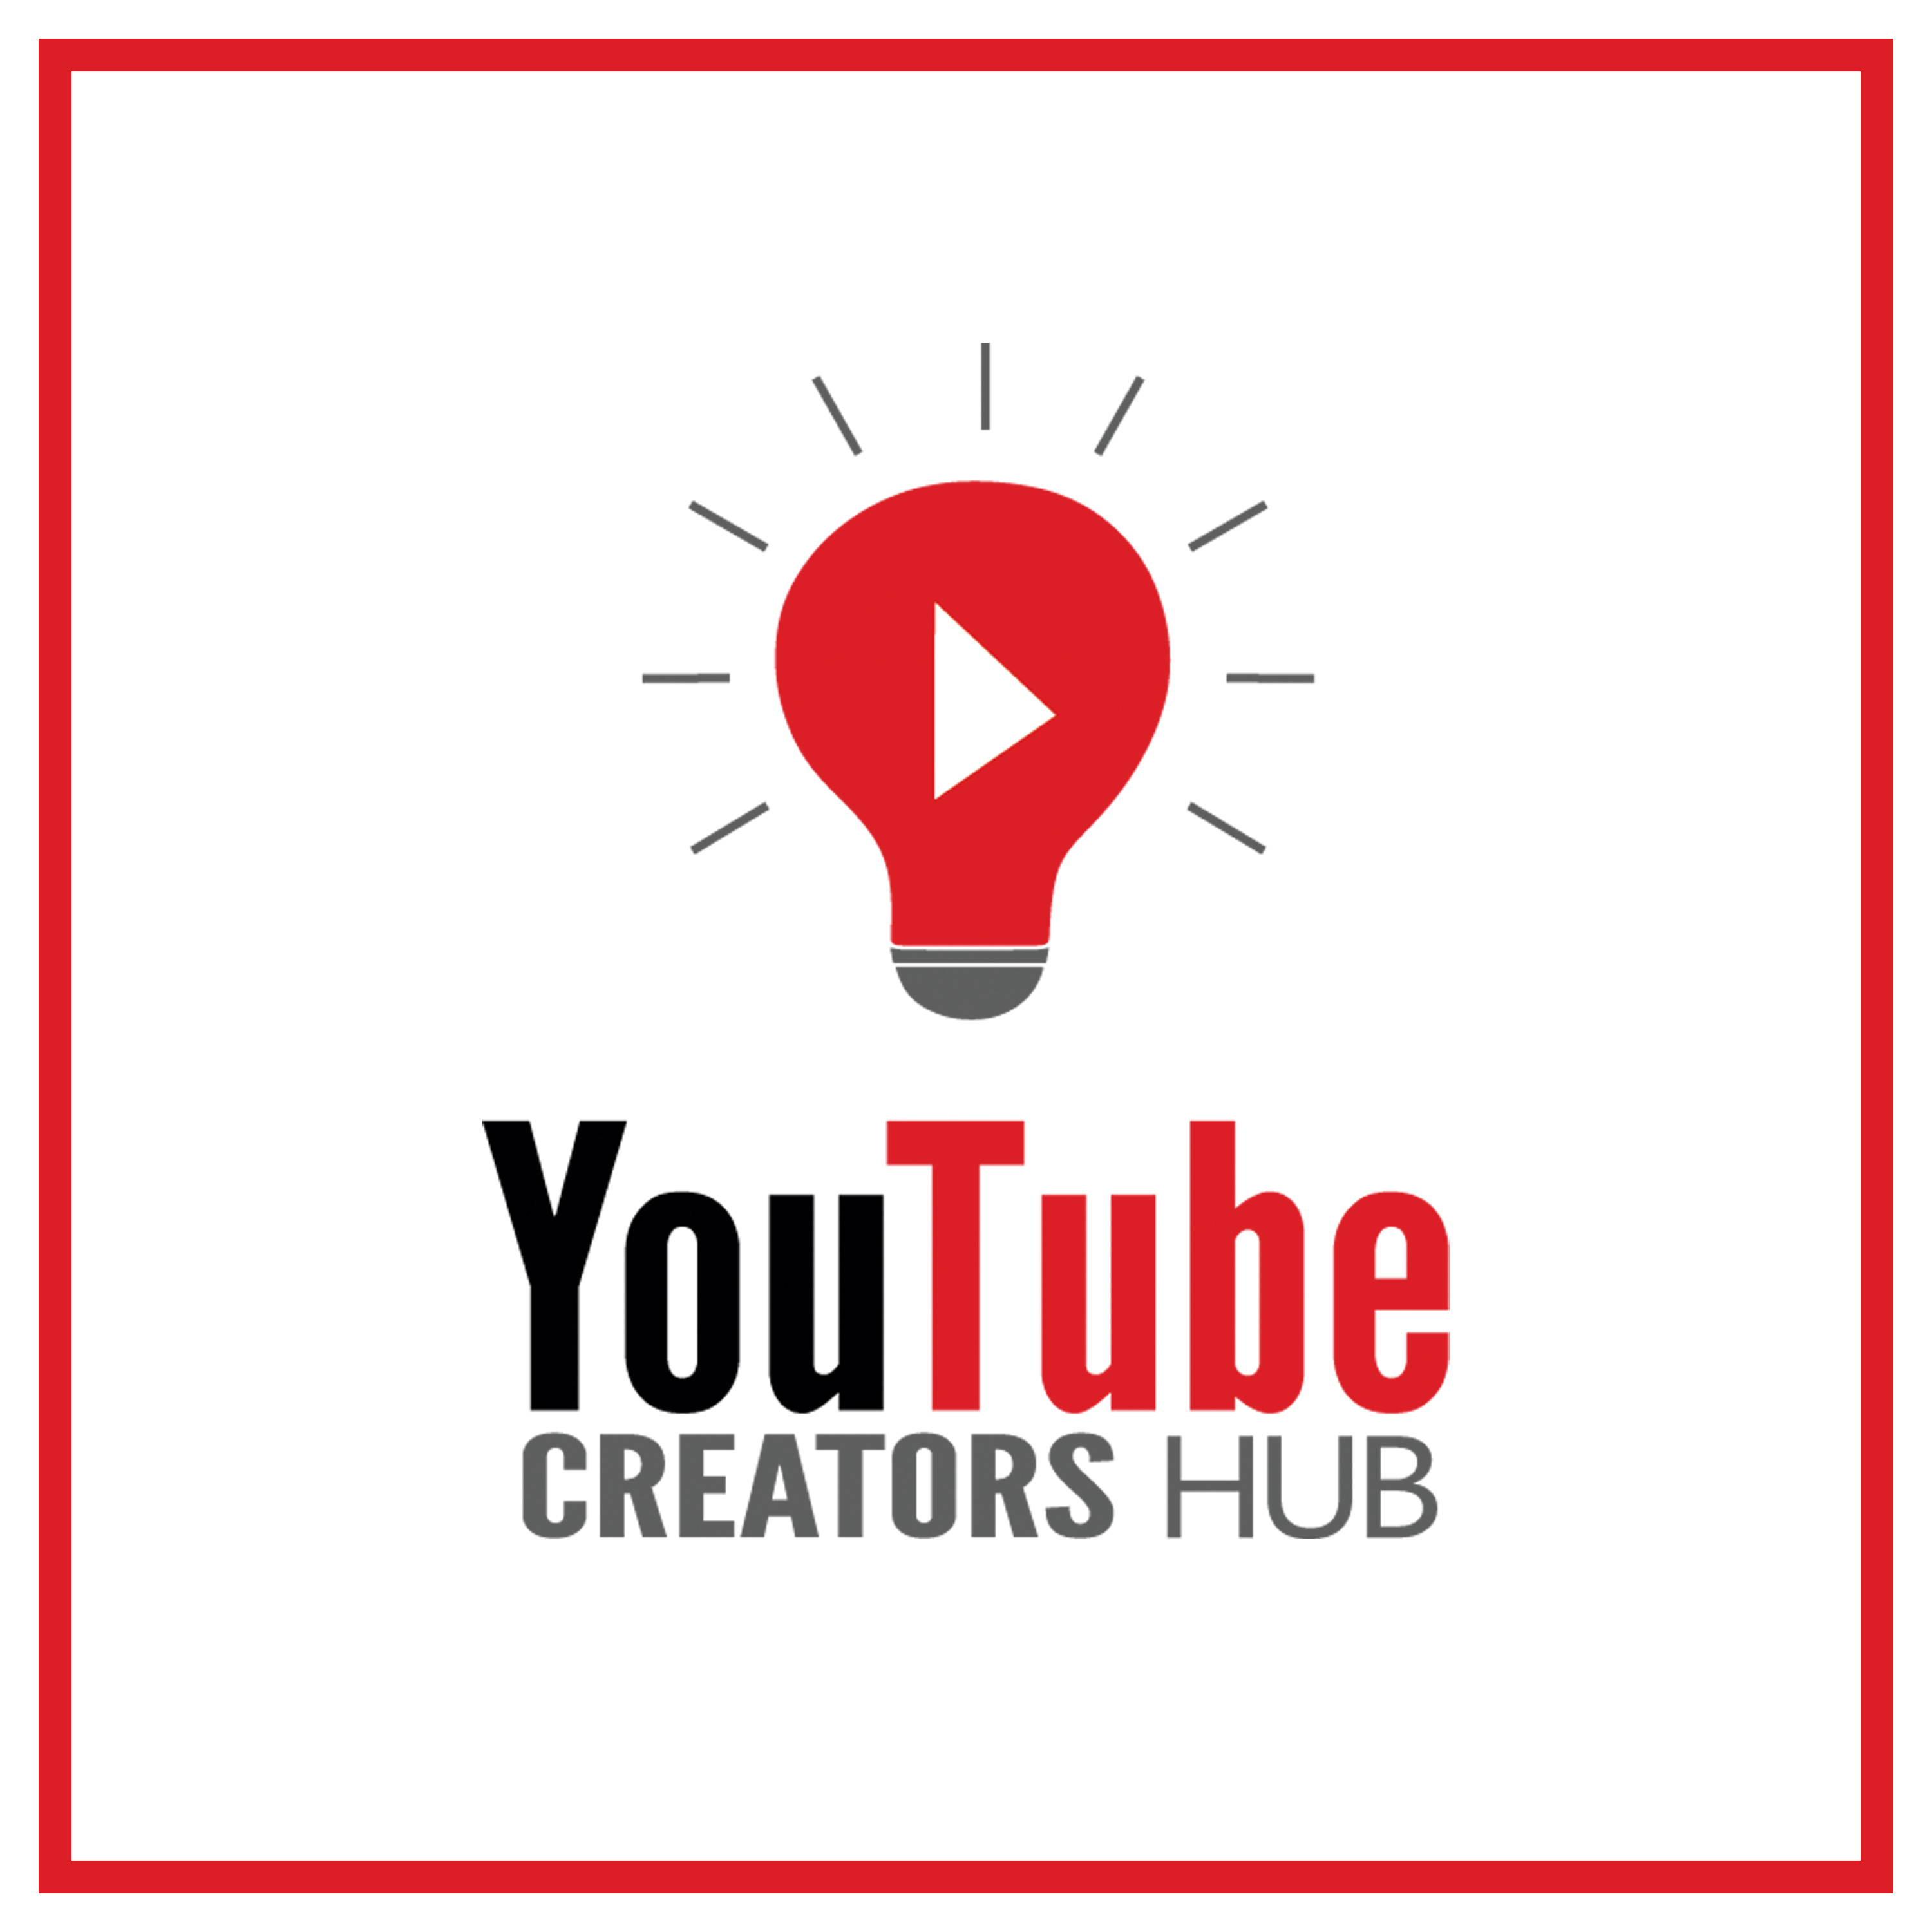 how to grow youtube channel 2018